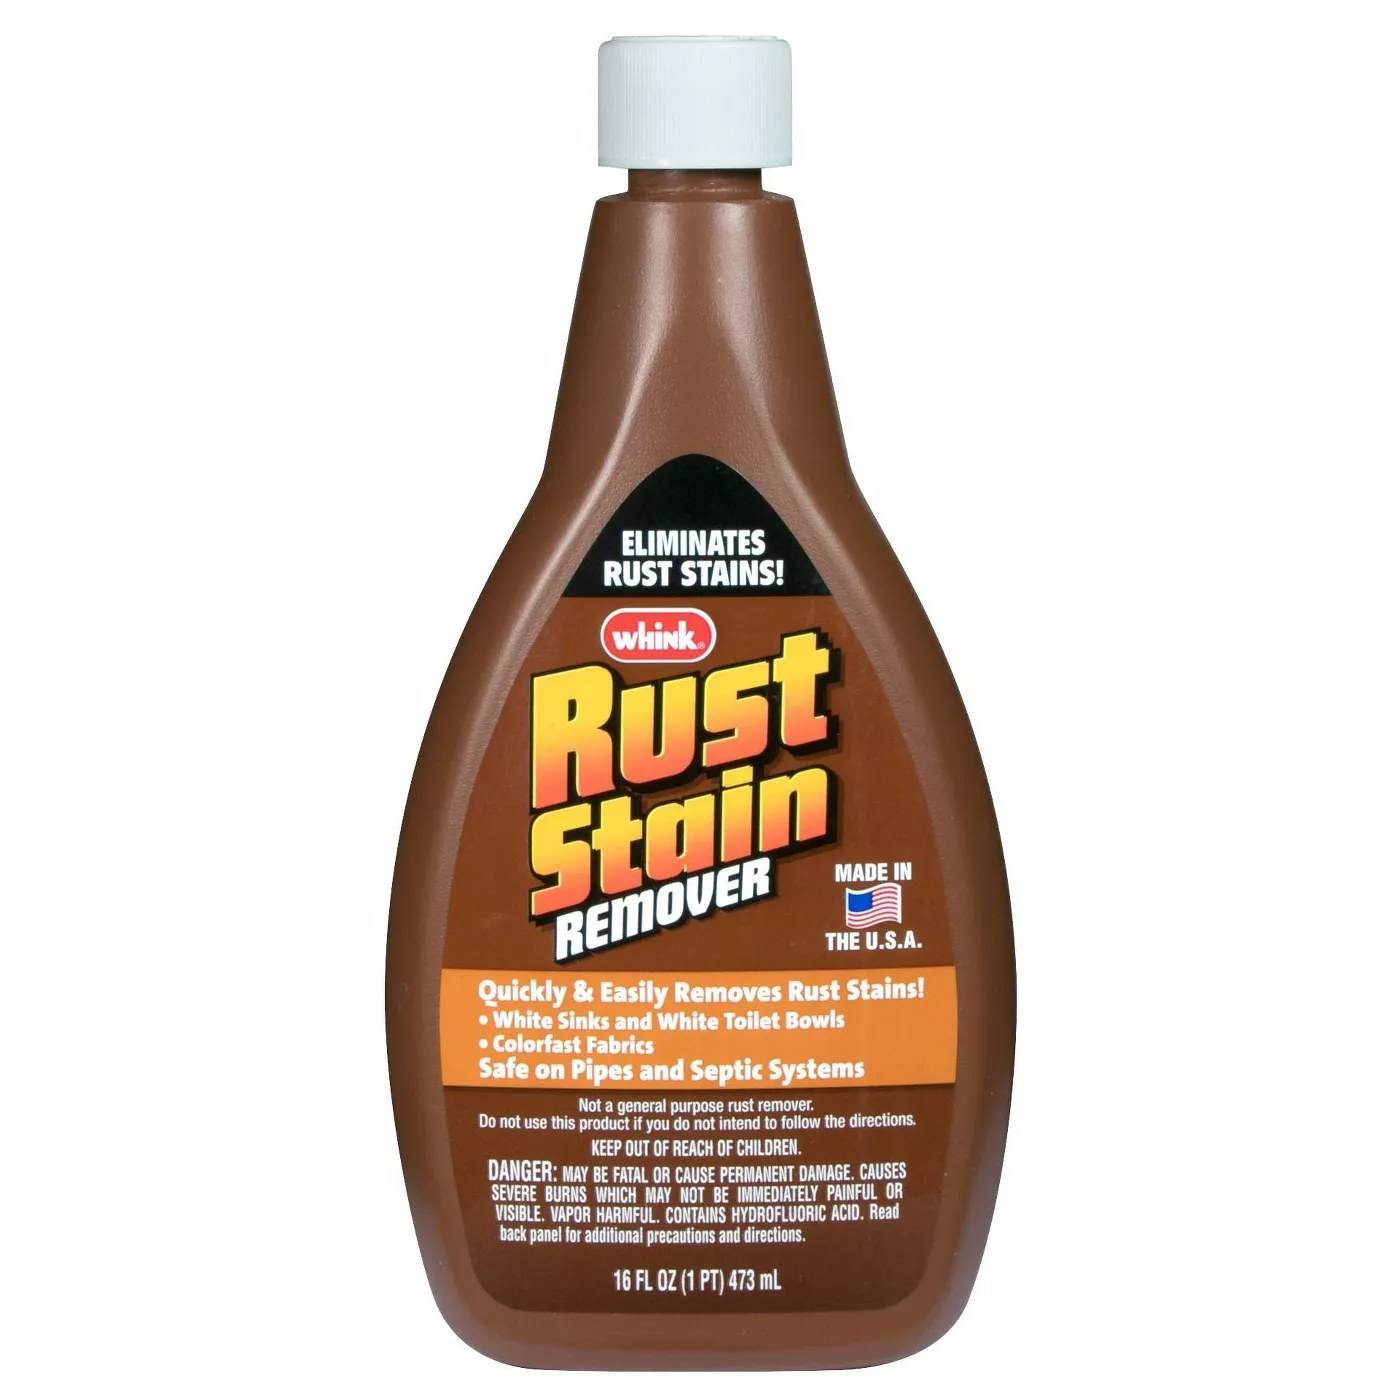 Whink's Rust Stain Remover quickly and easily removes rust stains from white sinks, white toilet bowls, and colorfast fabrics. It's safe on pipes and septic systems